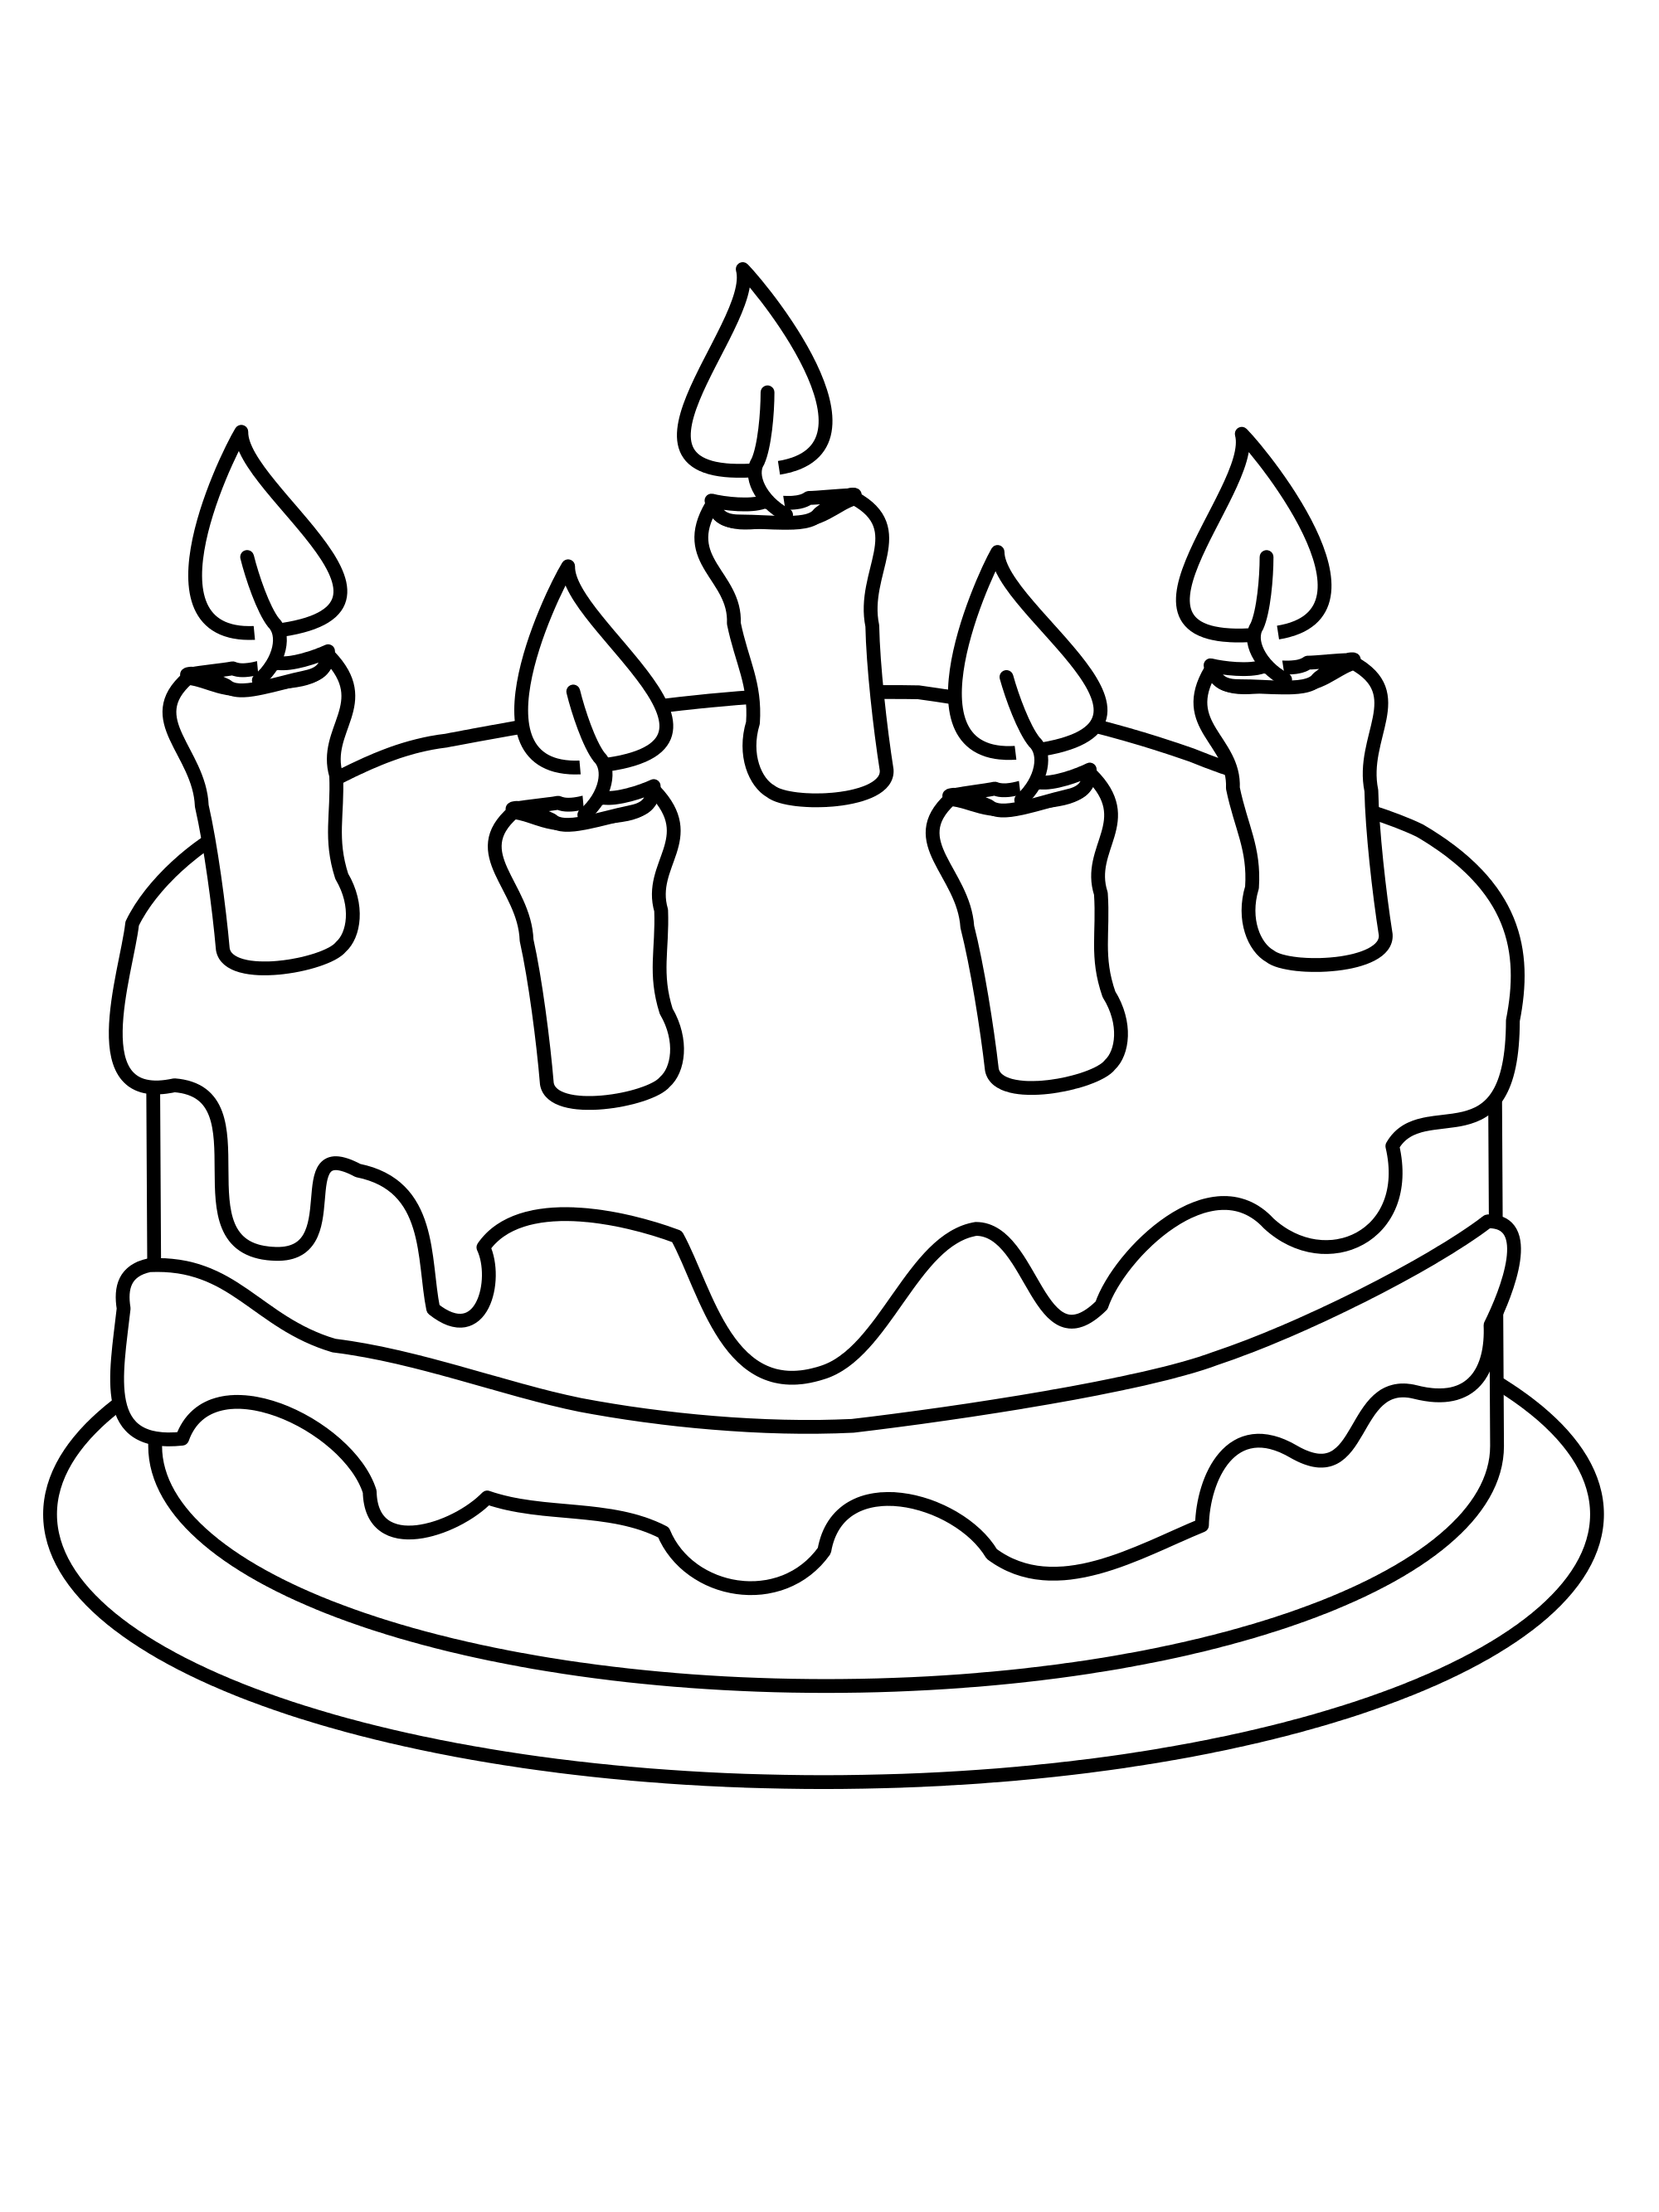 File draw this birthday. Anniversary drawing easy vector